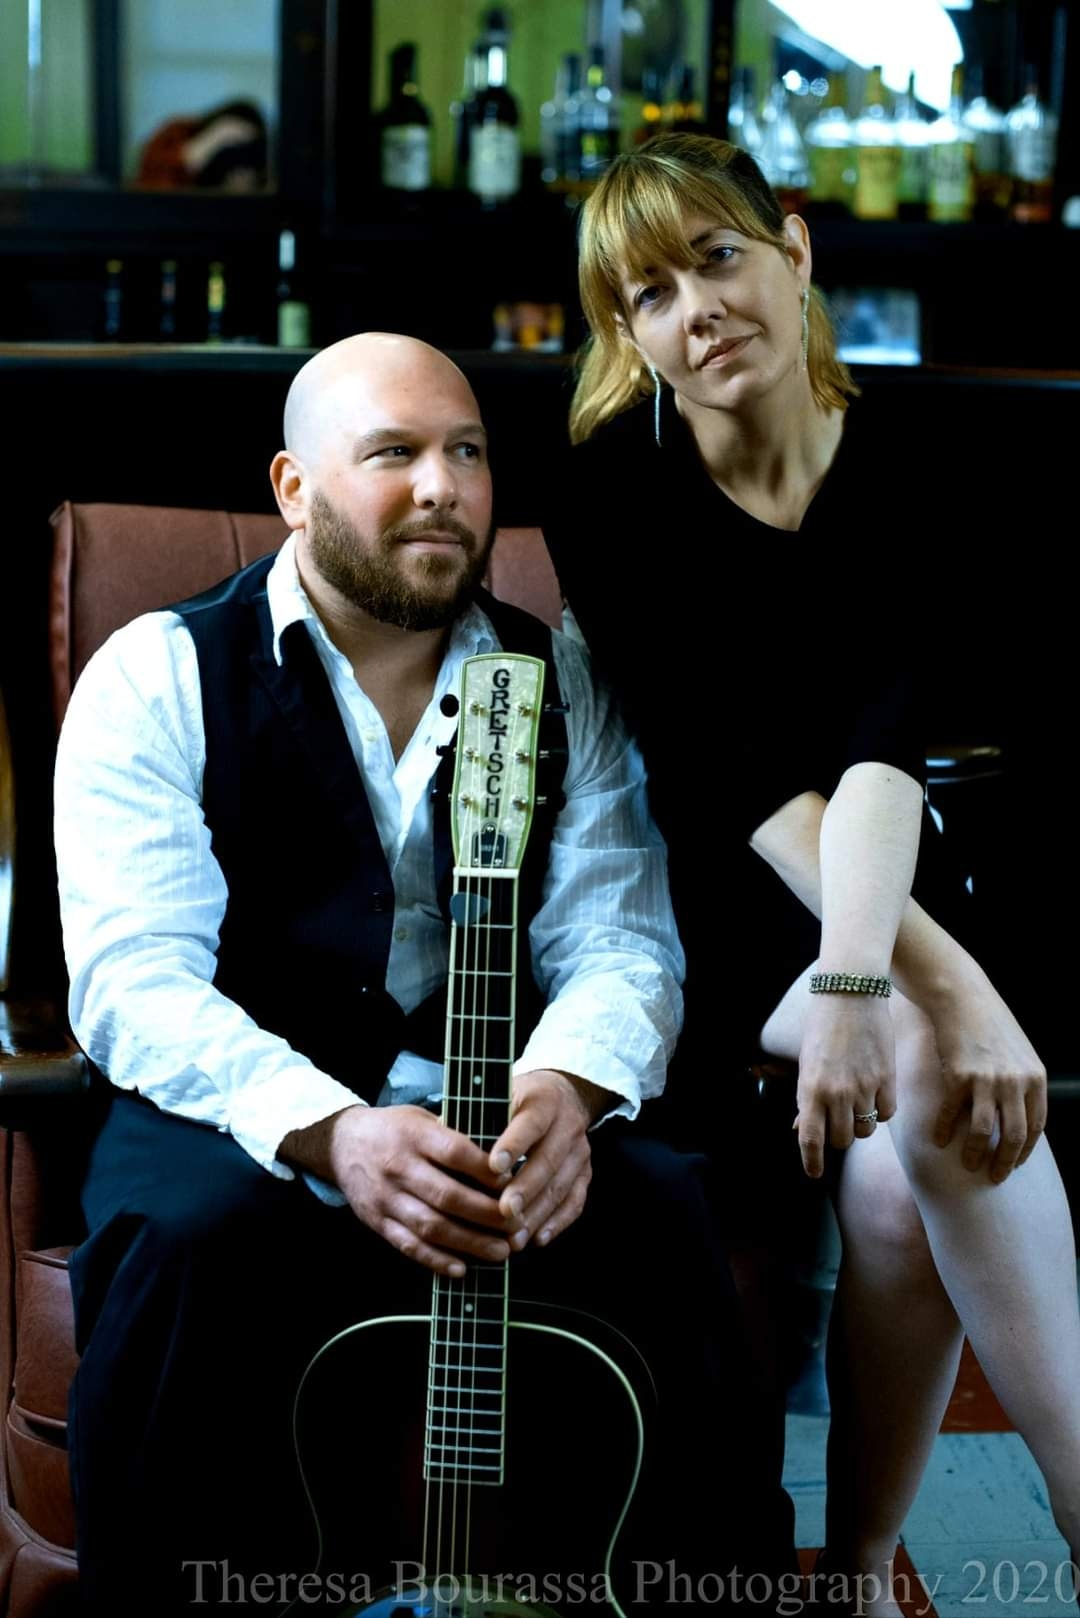 Promotional Shot of Brian Chaffee & Sarah Clarke in full color, better known as pop duo Undertoe